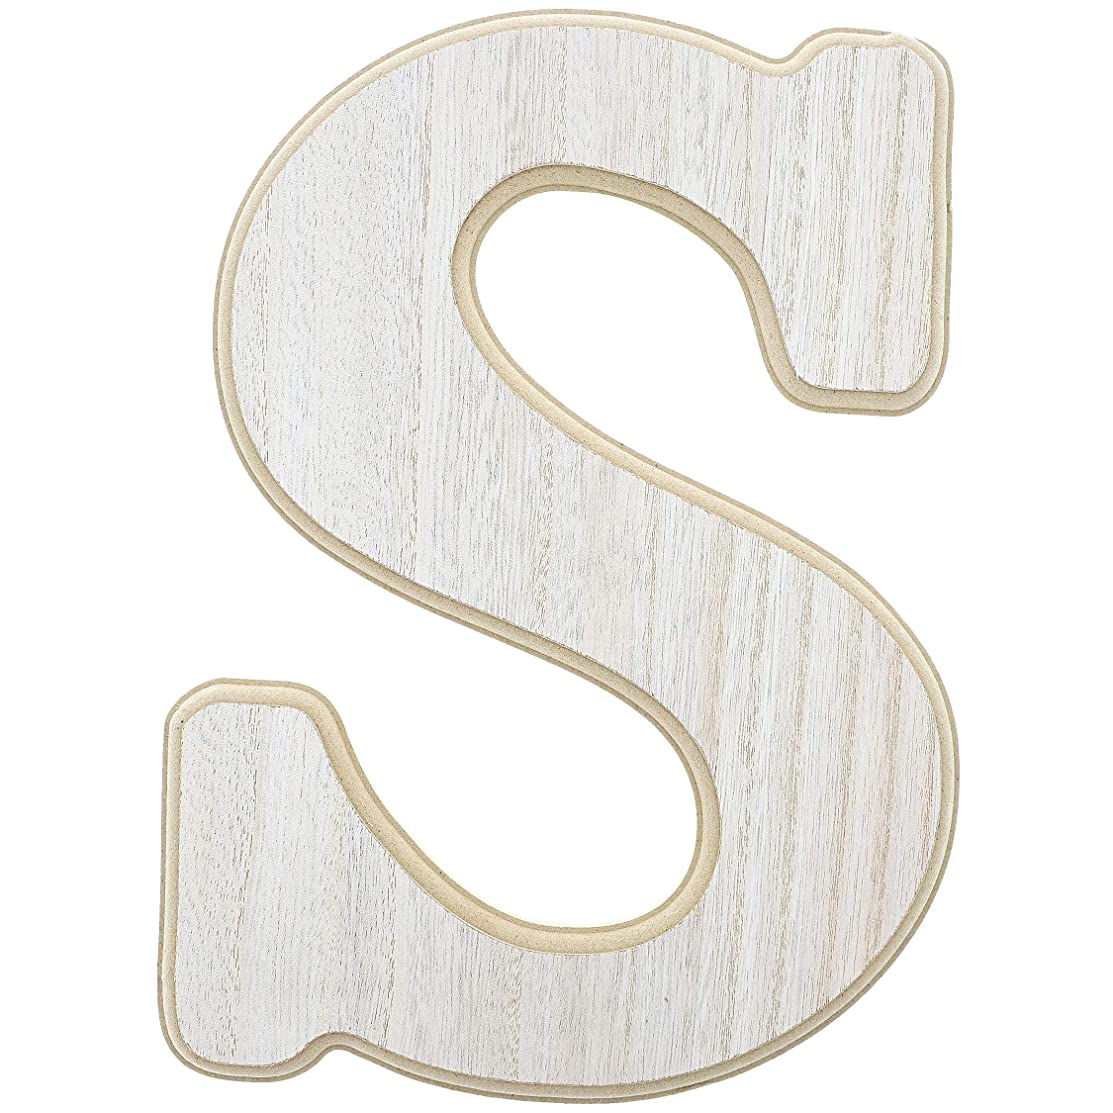 Unfinished Wood Letter S Cutout for DIY Painting, Crafts, and Wall Decor, 8.5 x .5 x 12 Inches